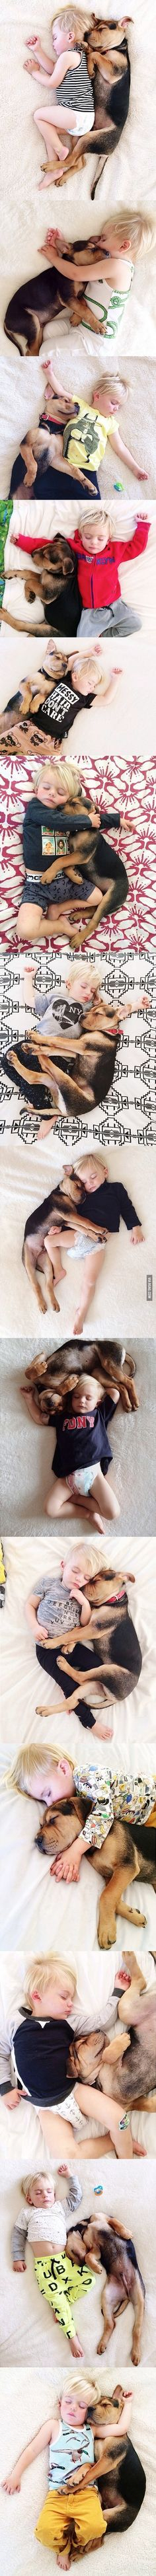 A mother photographs her son and his puppy taking a nap everyday. I would love to see more pictures of this precious boy and his dog as they grow together. These pictures are beautiful. Thank you for sharing them. XO